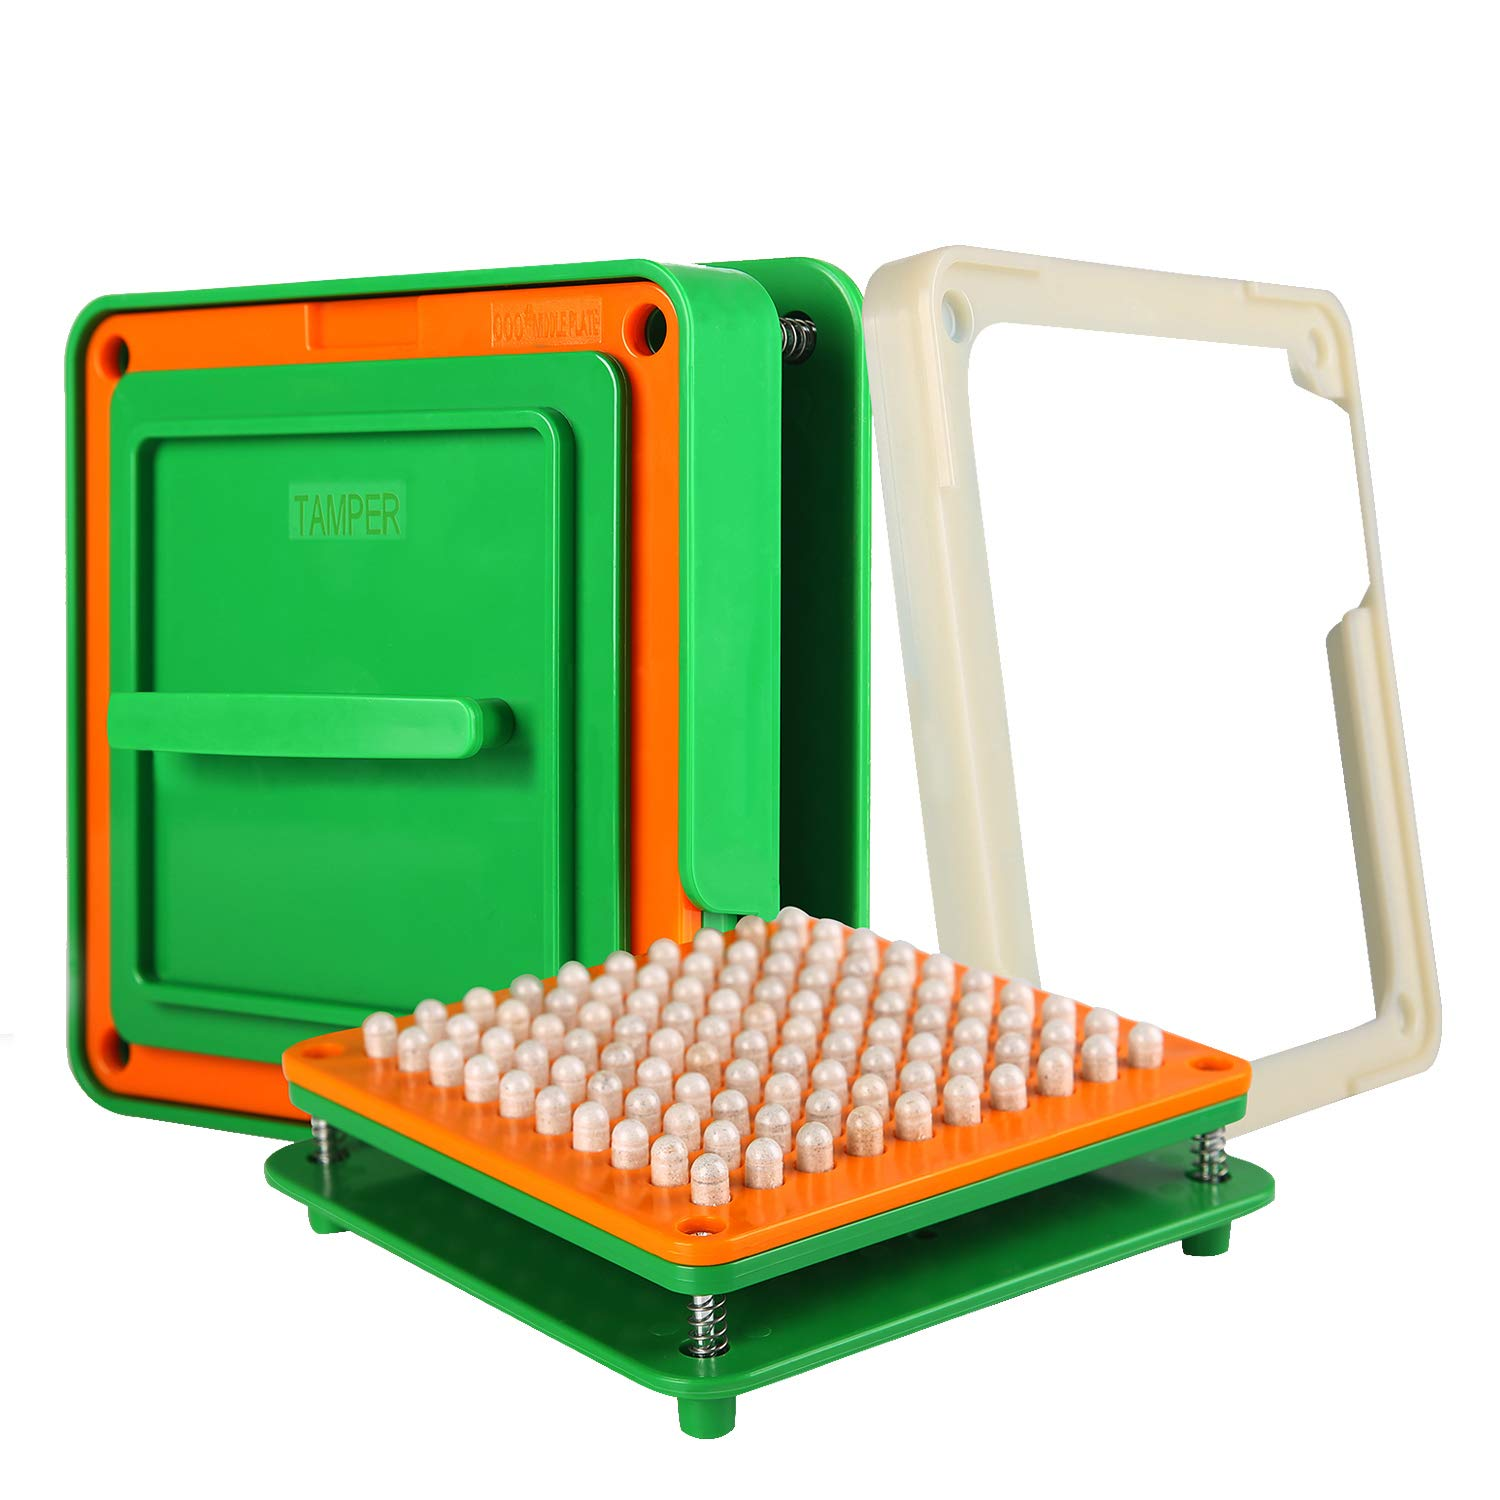 100 Holes (0#) Capsule Holder with Tamper for Size 0 Capsules Holding Tray Pill Dispensers & Reminders Green by wananfu